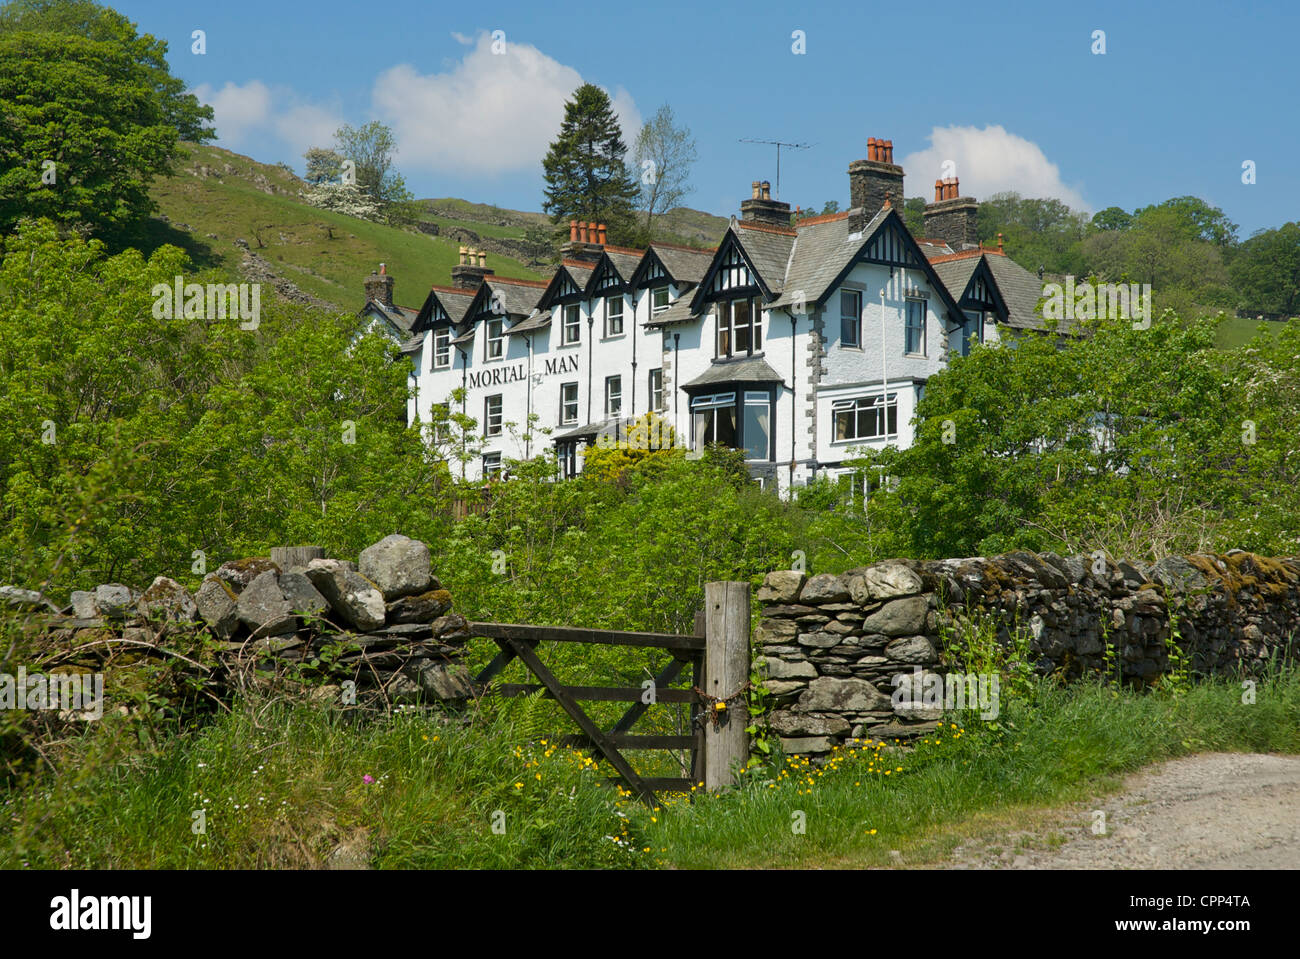 Pub, the Mortal Man, in the village of Troutbeck, Lake District National Park, Cumbria, England UK - Stock Image